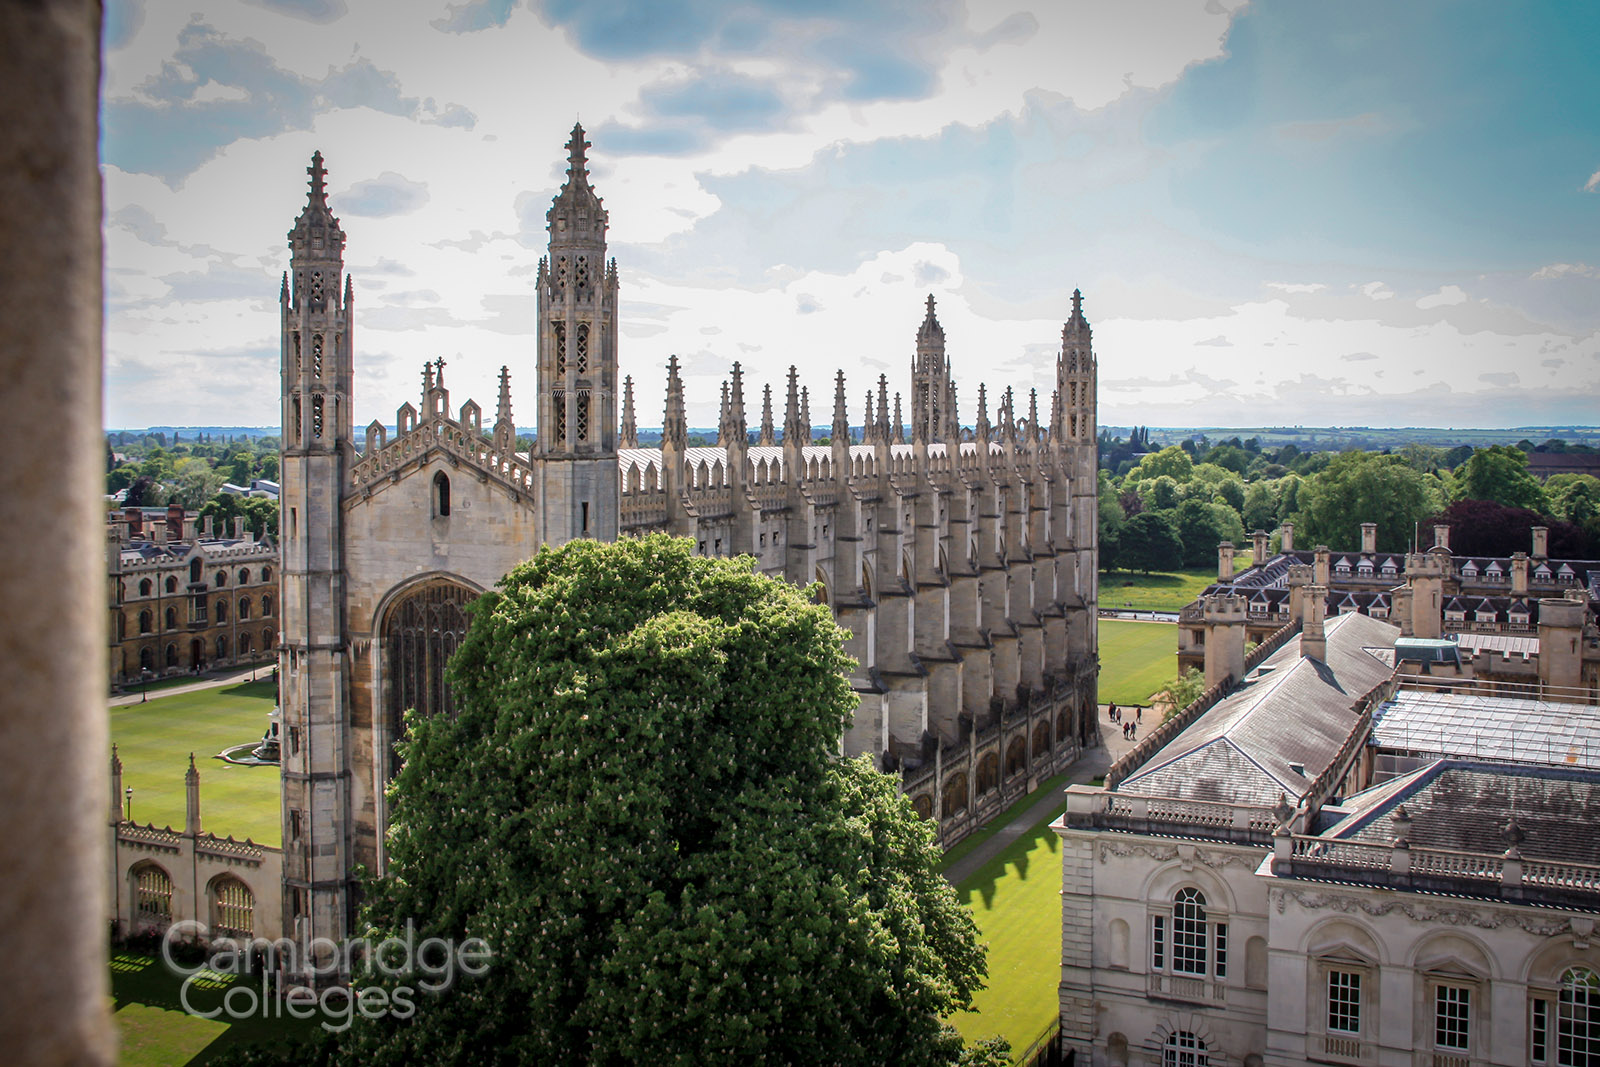 King's college chape as viewed from the tower of Great St Mary's church